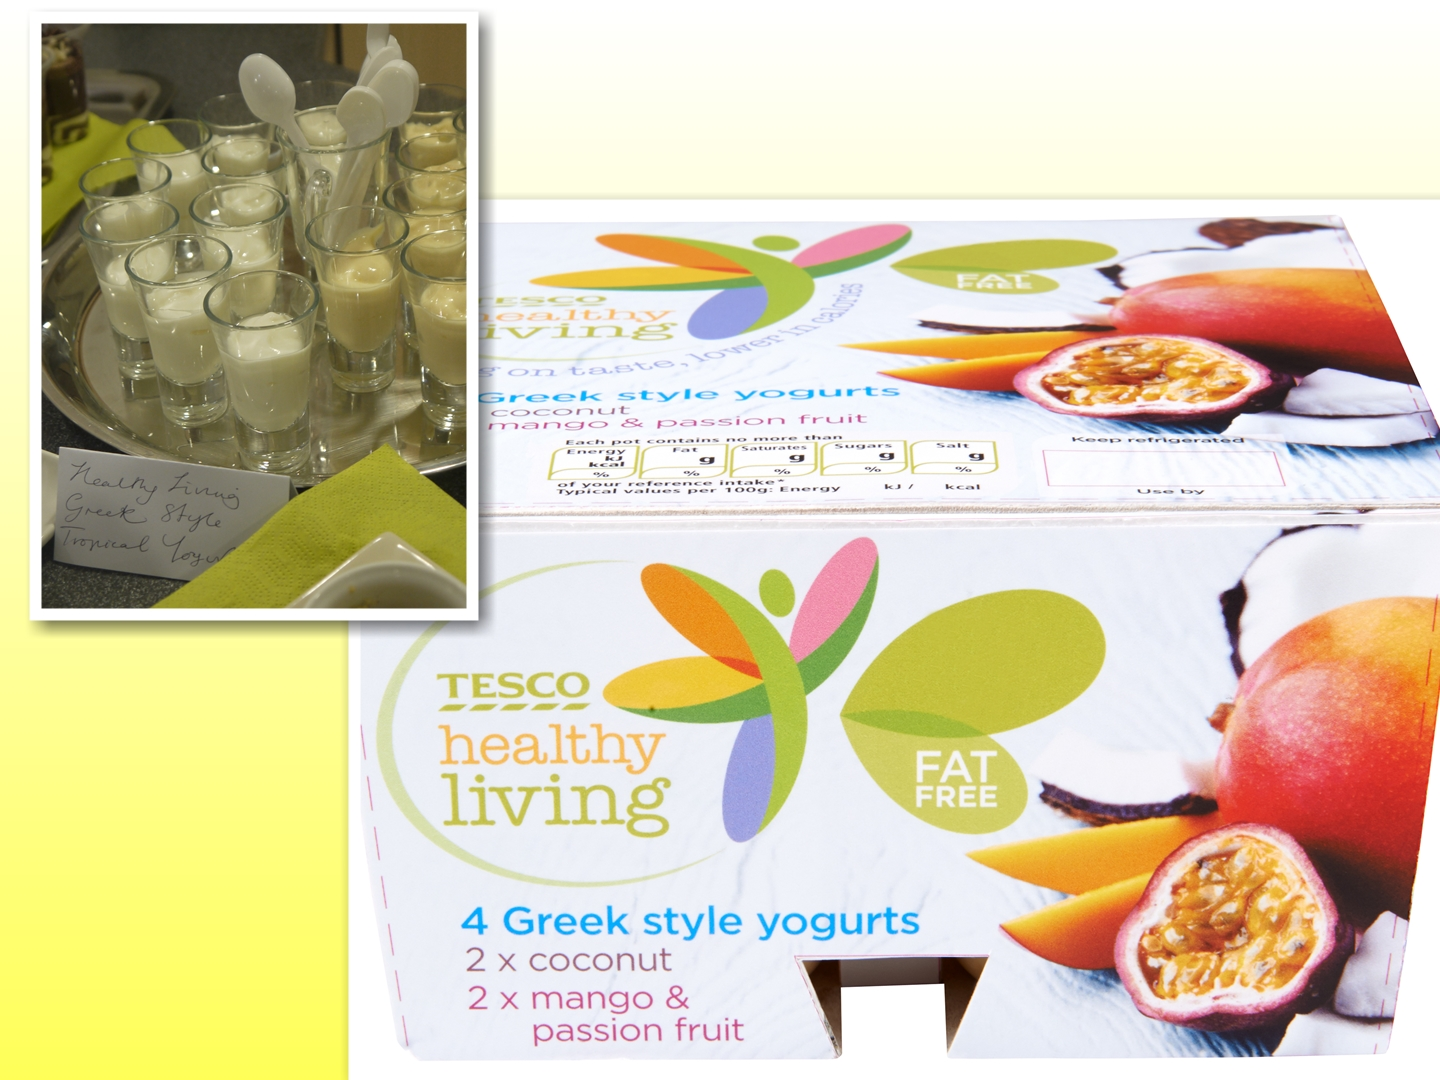 Tesco Healthy living8